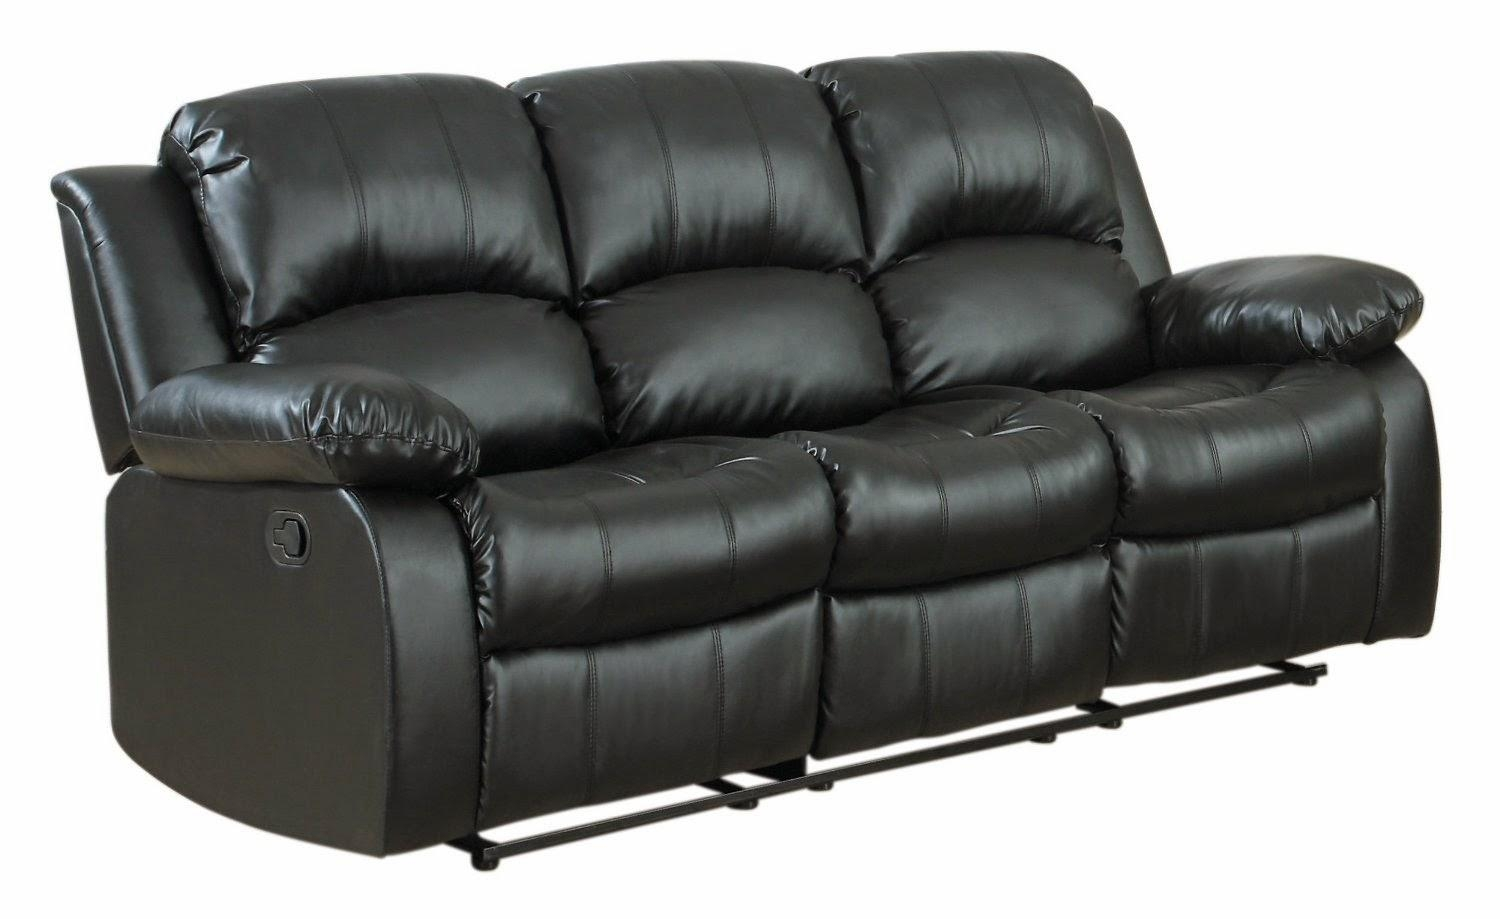 recliner sofas leather dimension sofa 2 places 20 top berkline ideas